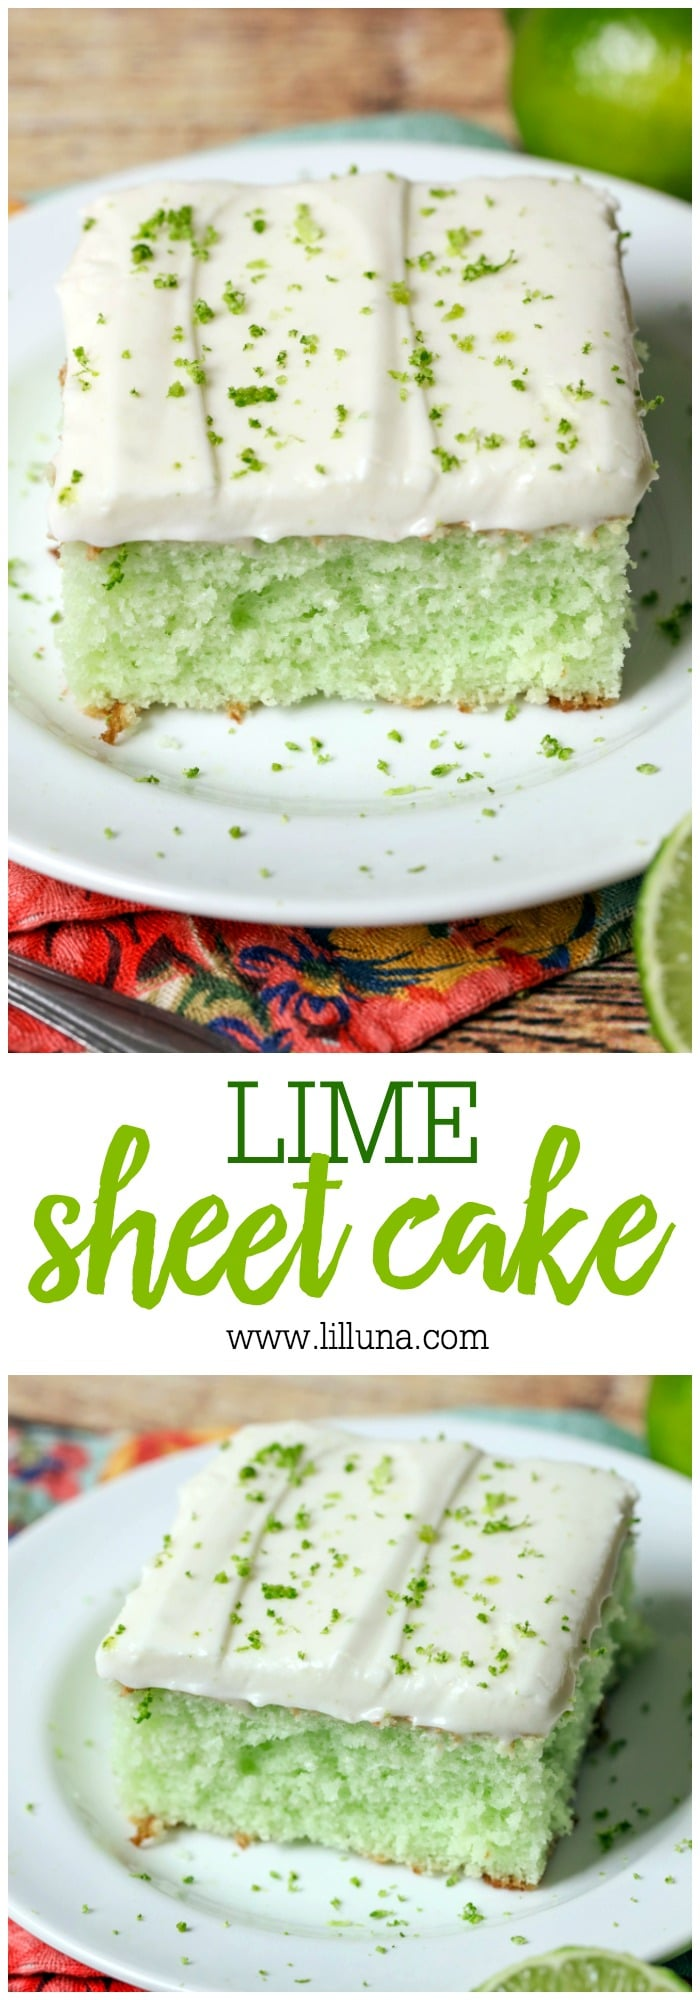 Lime Sheet Cake Recipe